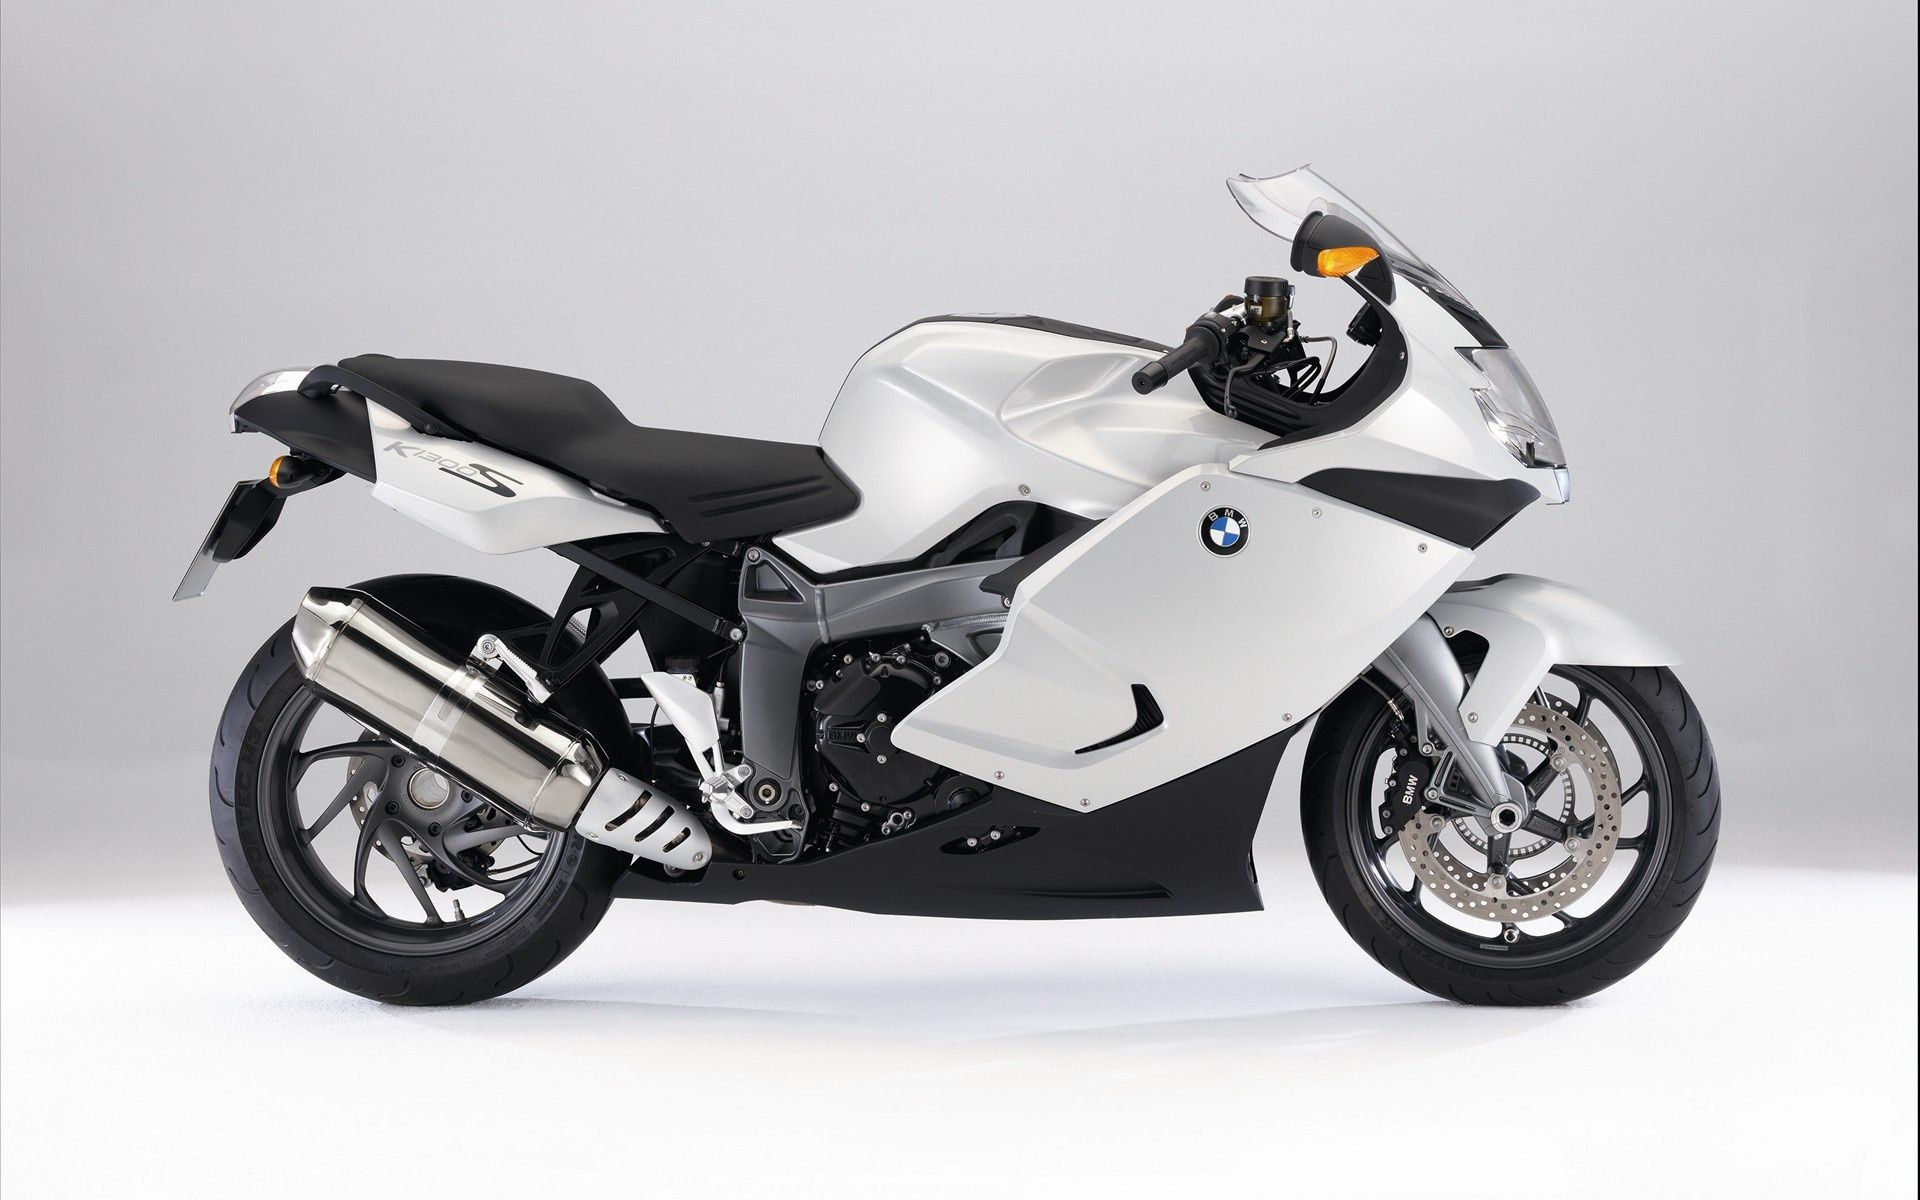 Bmw Bikes Price List Bmw Bikes 2015 Bmw Bikes Accessories With